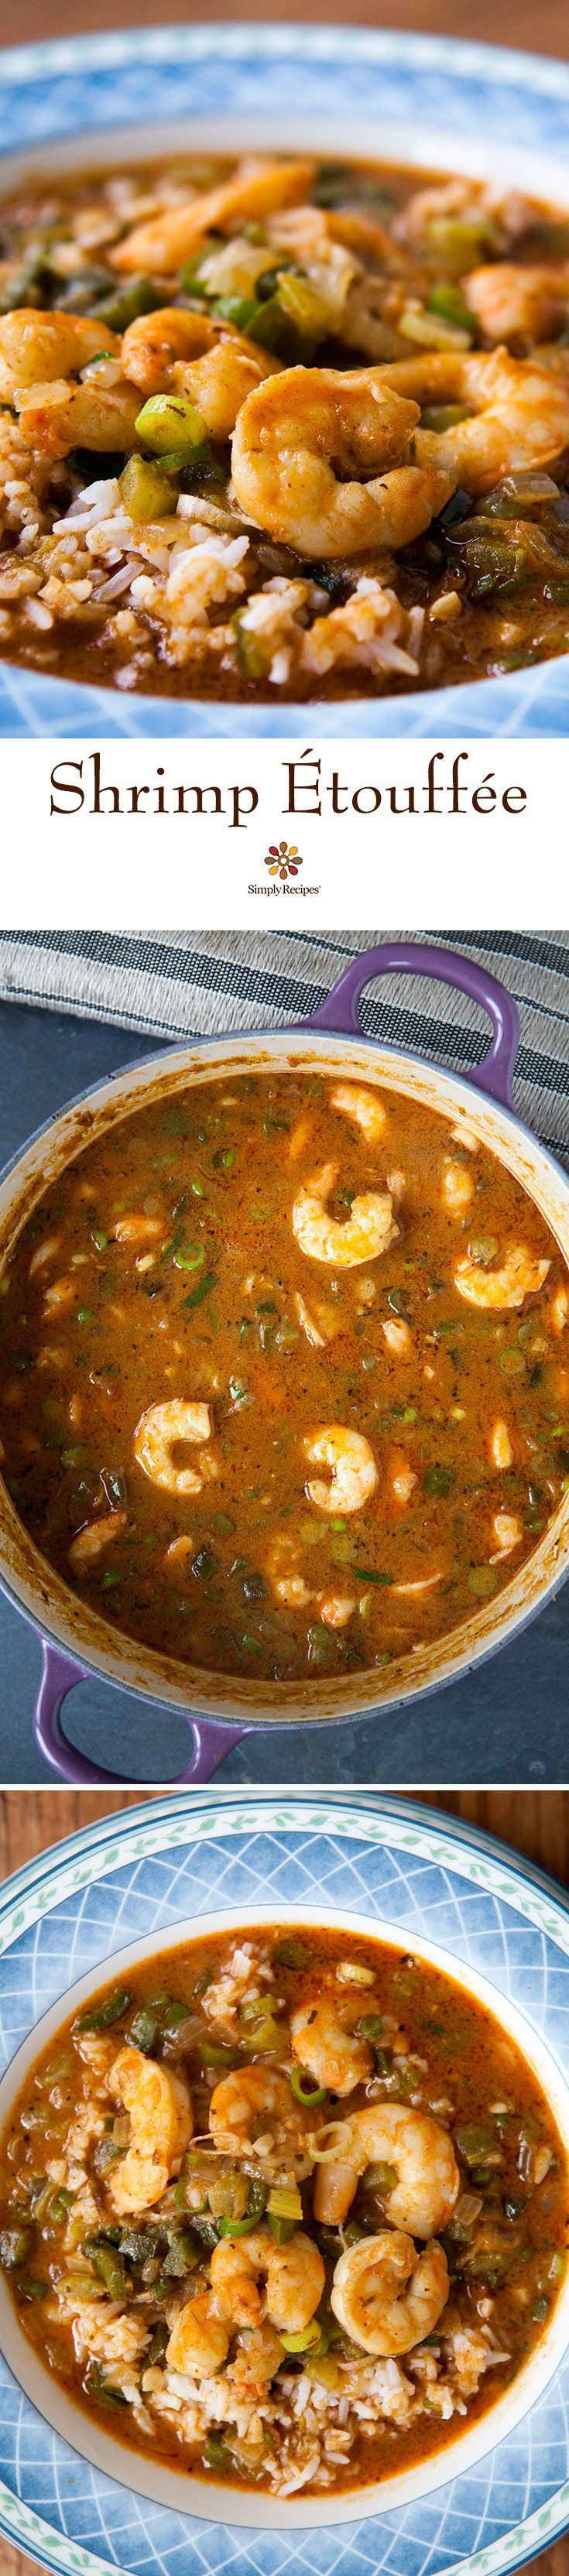 Shrimp Etouffee ~ Shrimp etouffee, a classic Louisiana stew of shrimp served over rice. ~ SimplyRecipes.com